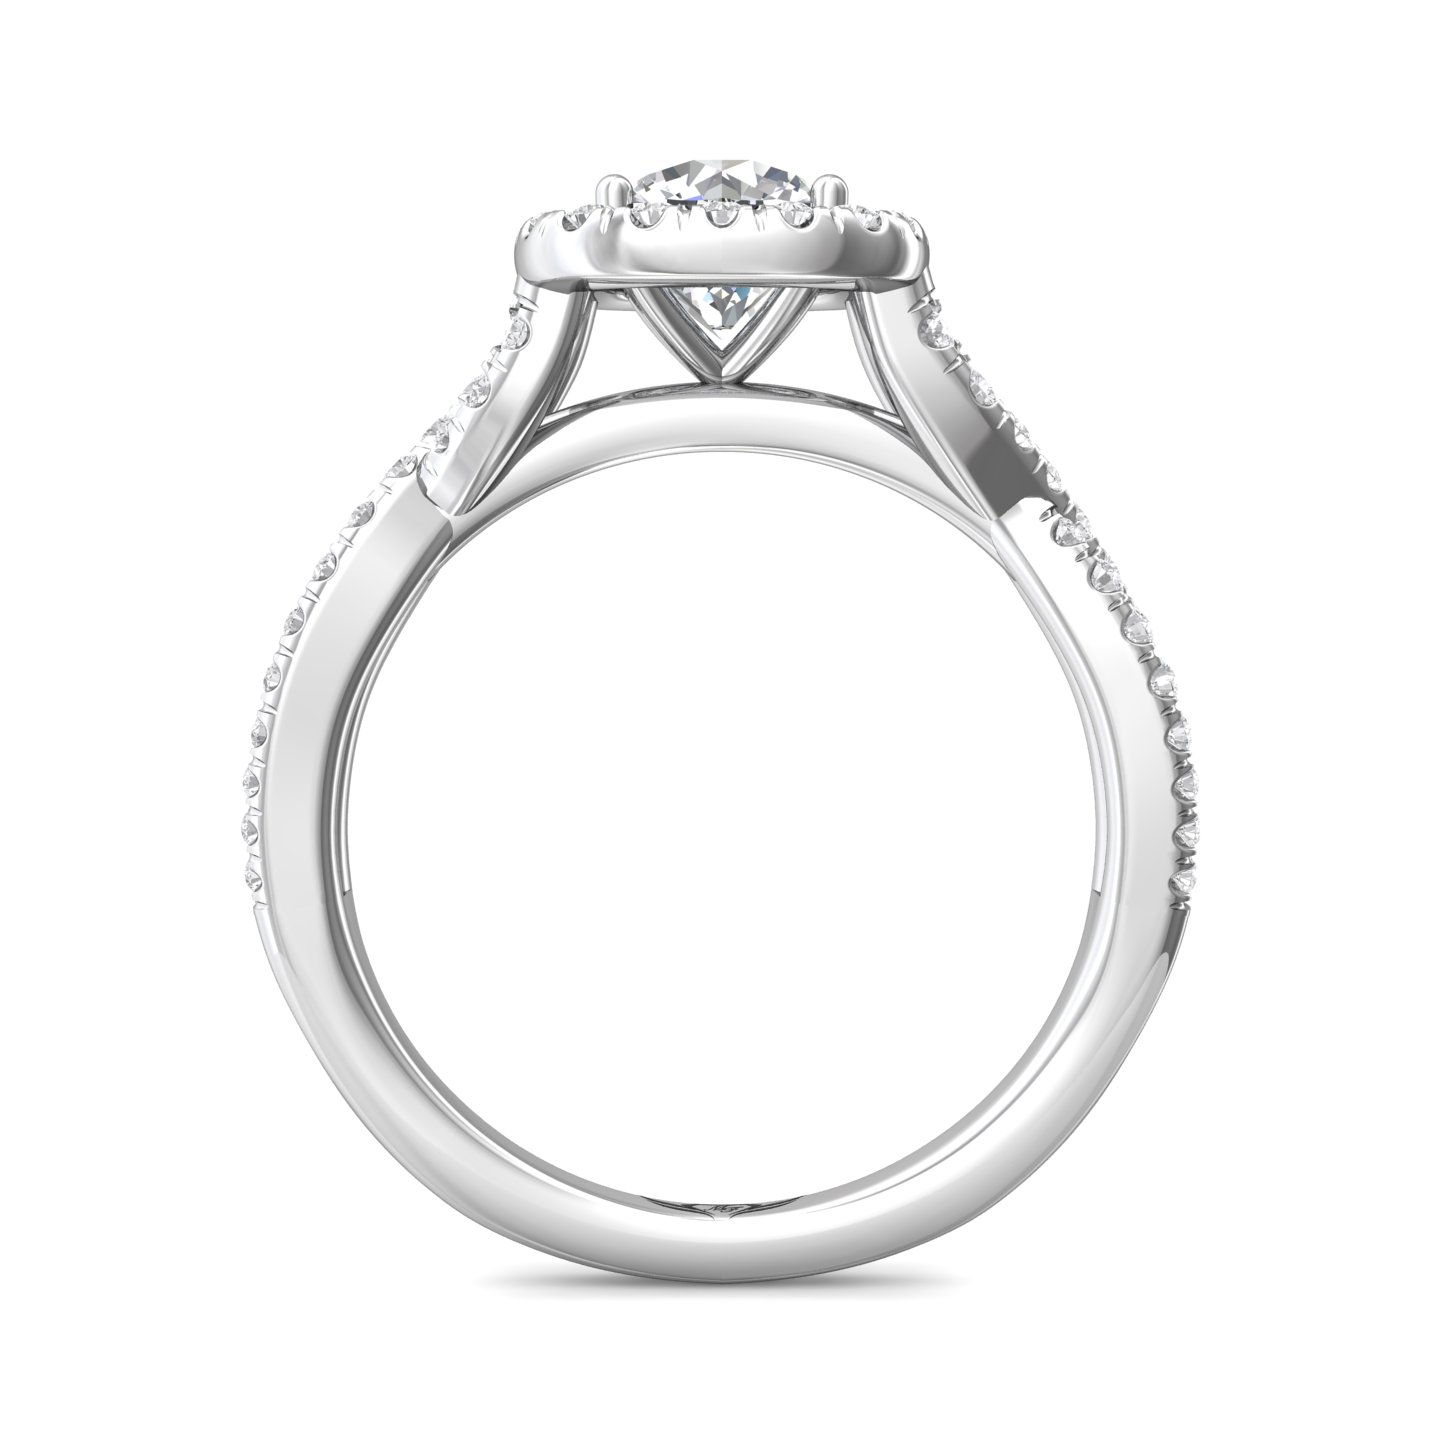 Rings - 14K White Gold FlyerFit Split Shank Engagement Ring - image #2